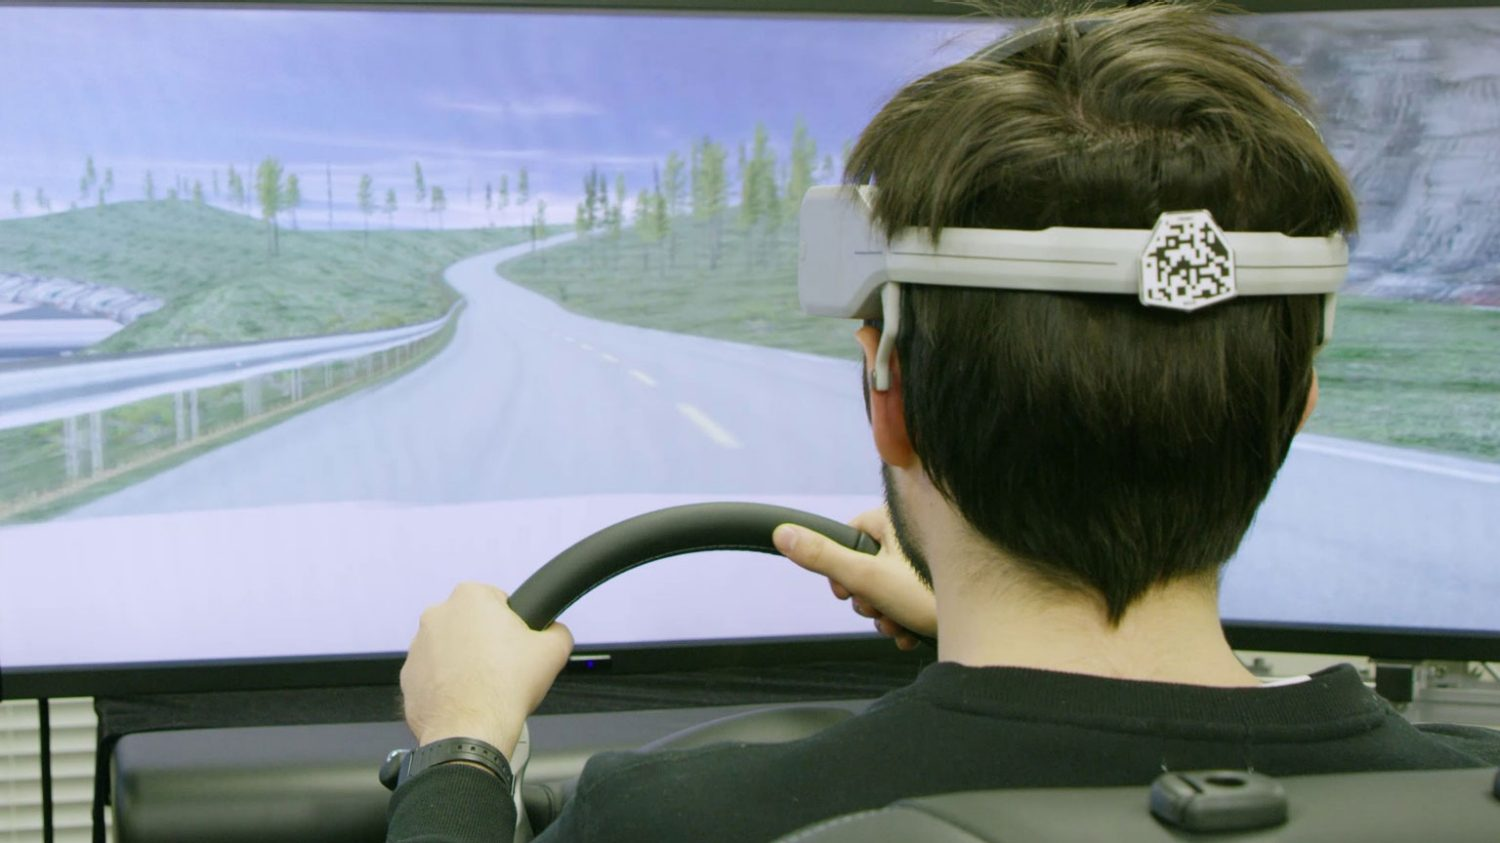 Nissan to show Brain-to-Vehicle technology, new LEAF at CES